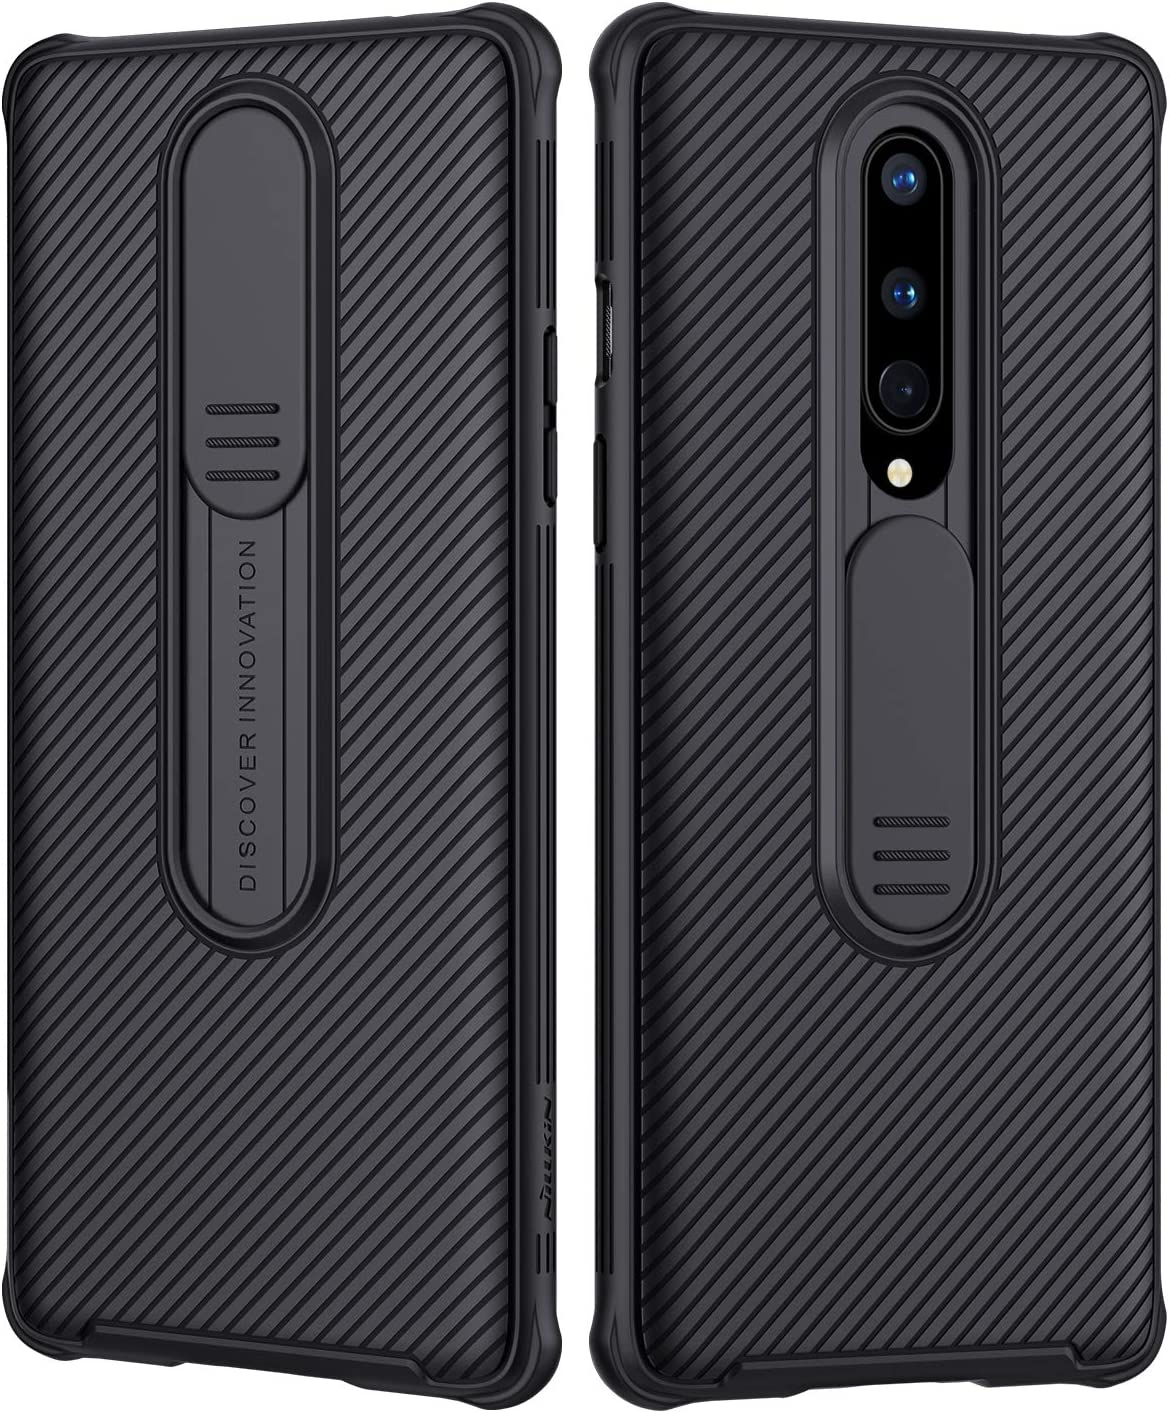 Nillkin Oneplus 8 Case, CamShield Pro Series Case with Slide Camera Cover, Slim Stylish Protective case for Oneplus 8 - Black